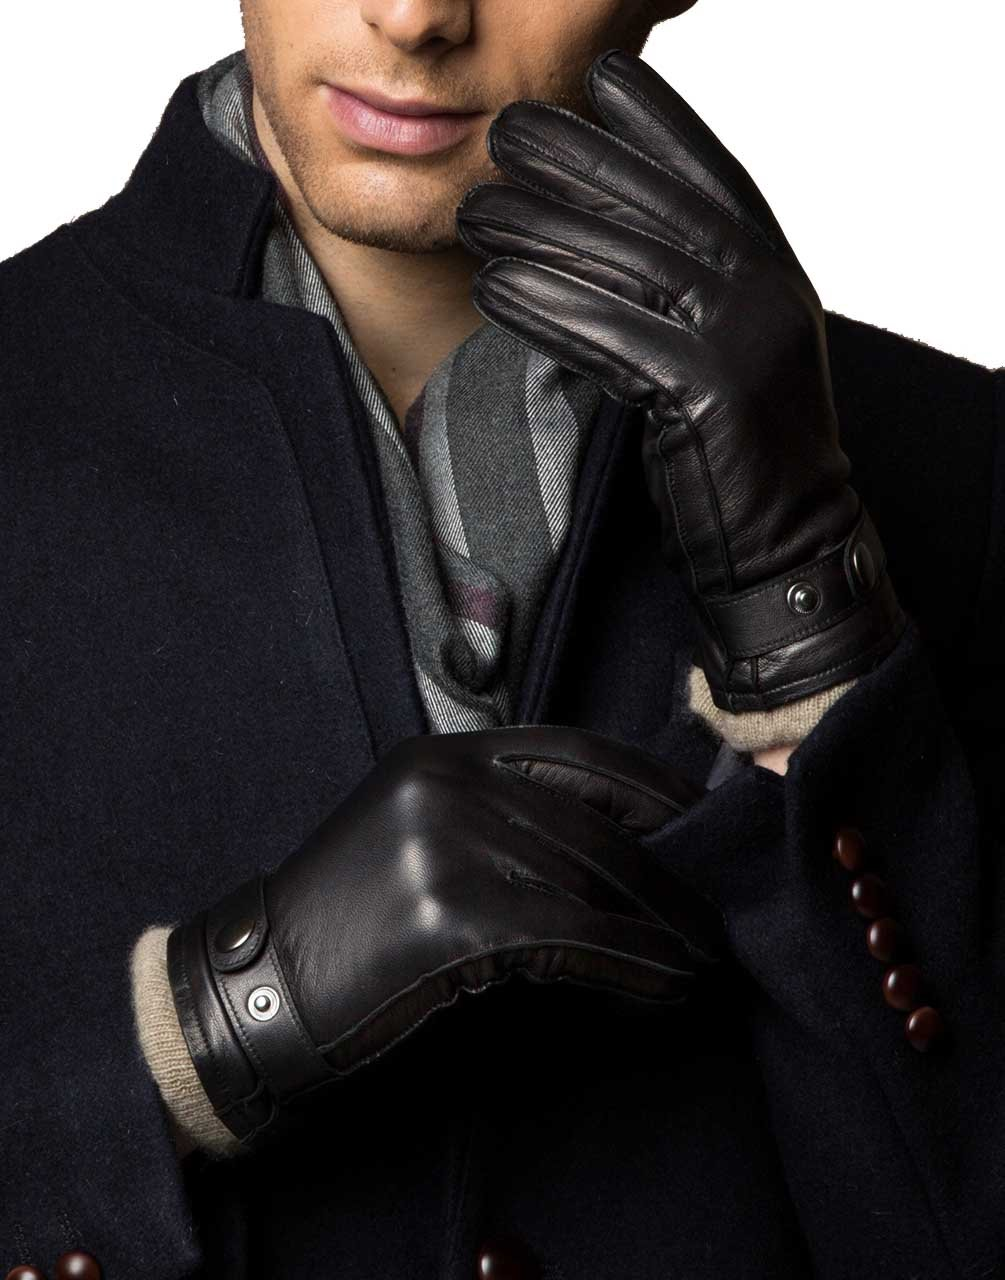 YISEVEN Men's Touchscreen Lambskin Leather Dress Gloves Cashmere Fur Lined Genuine Luxury and Hand Warm Heated Lining for Winter Driving Motorcycle Work Xmas Gifts, Black 8.5''/M